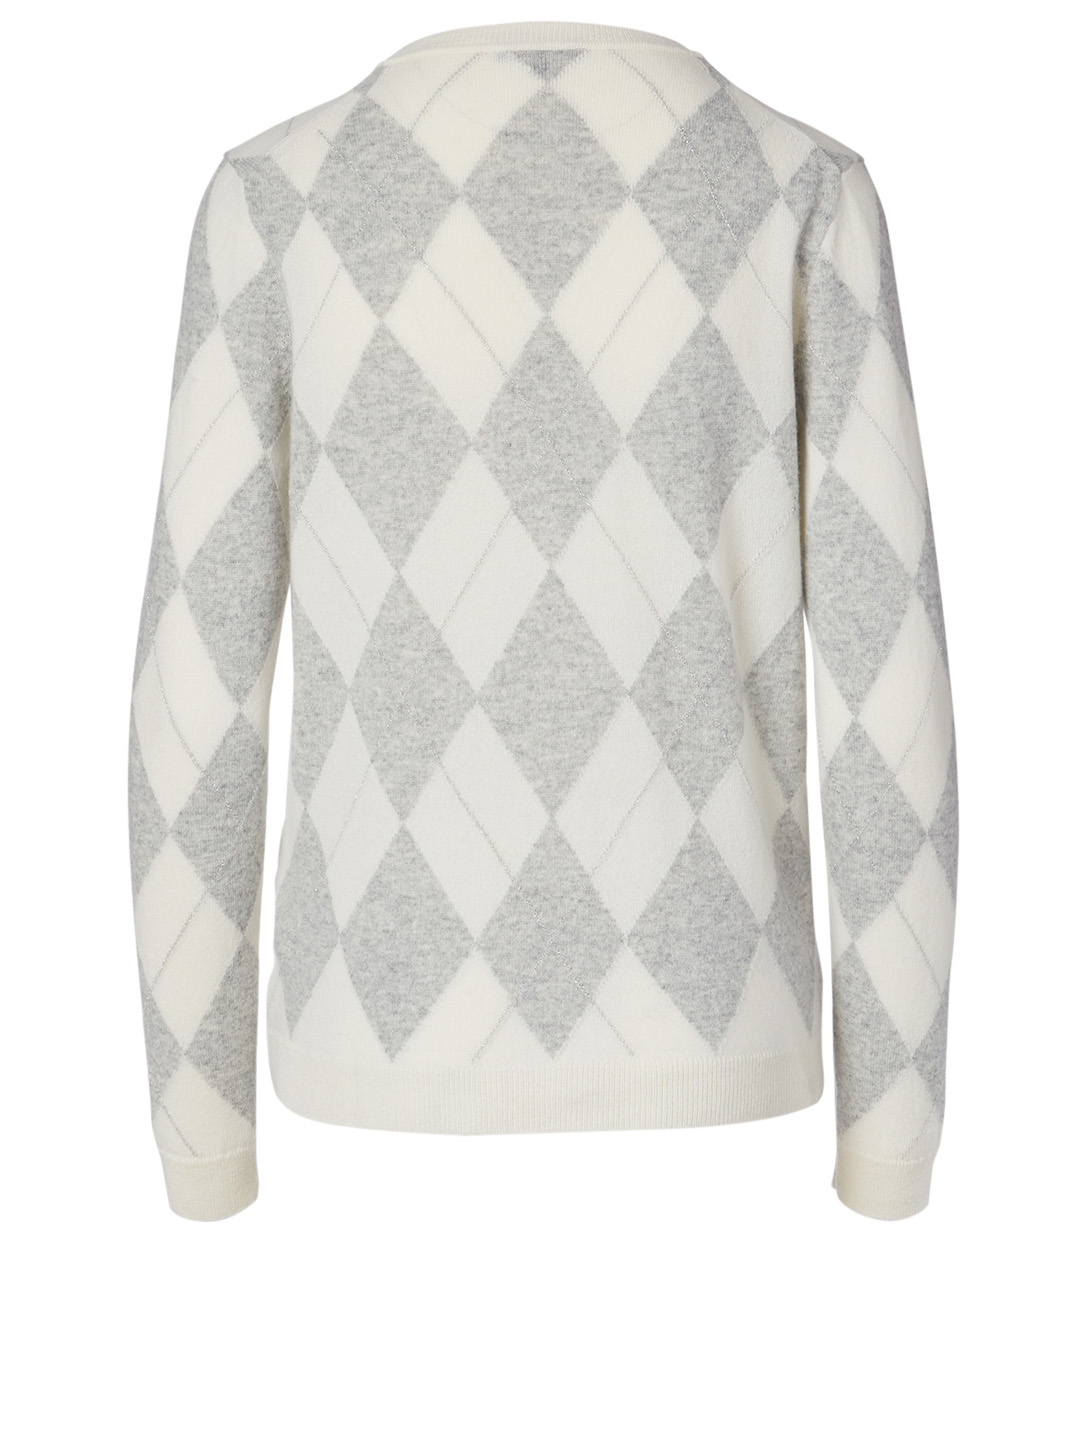 LAFAYETTE 148 NEW YORK Cashmere Argyle Sweater Women's Grey